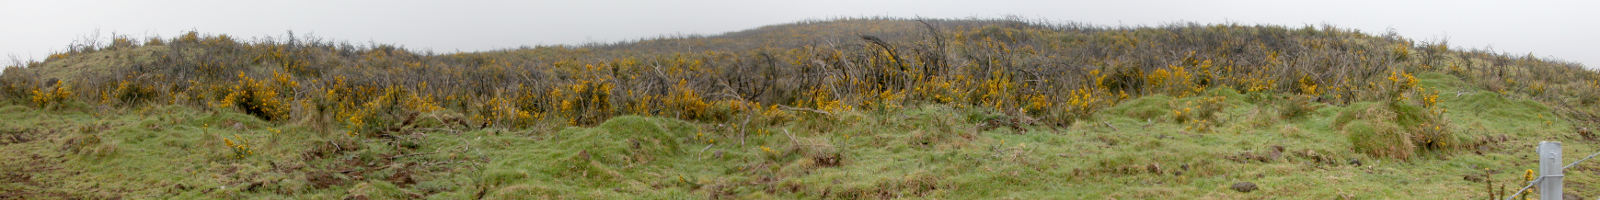 A paddock invaded by gorse in Hawai'i (D.Kriticos, CSIRO)